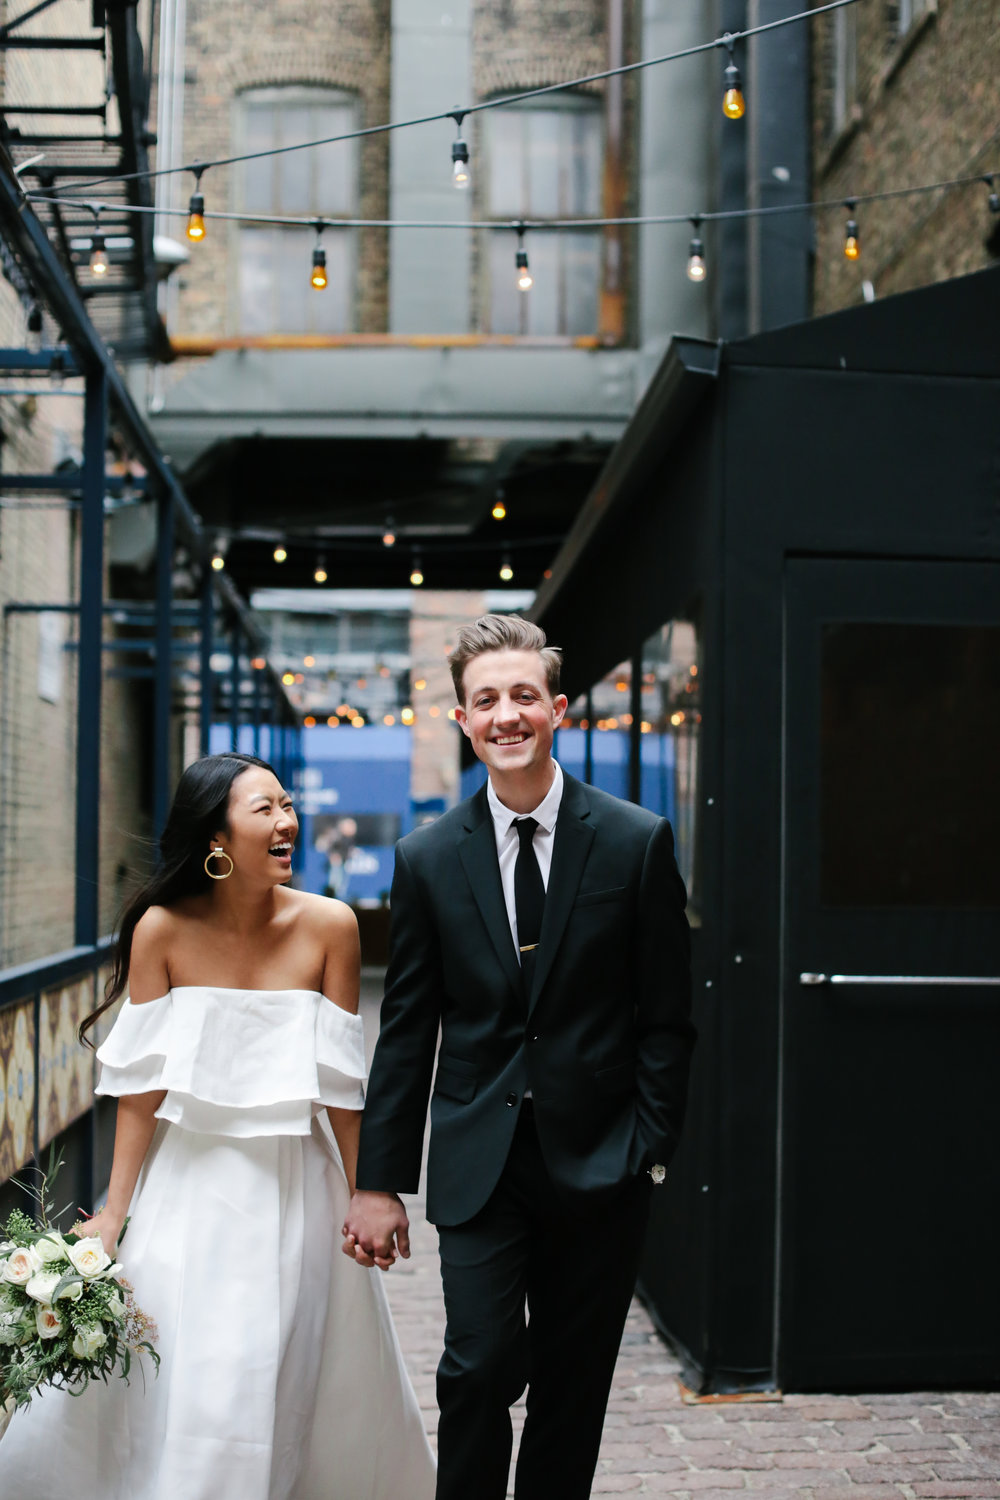 Harris & Michaela   // Chicago, Illinois // 2017